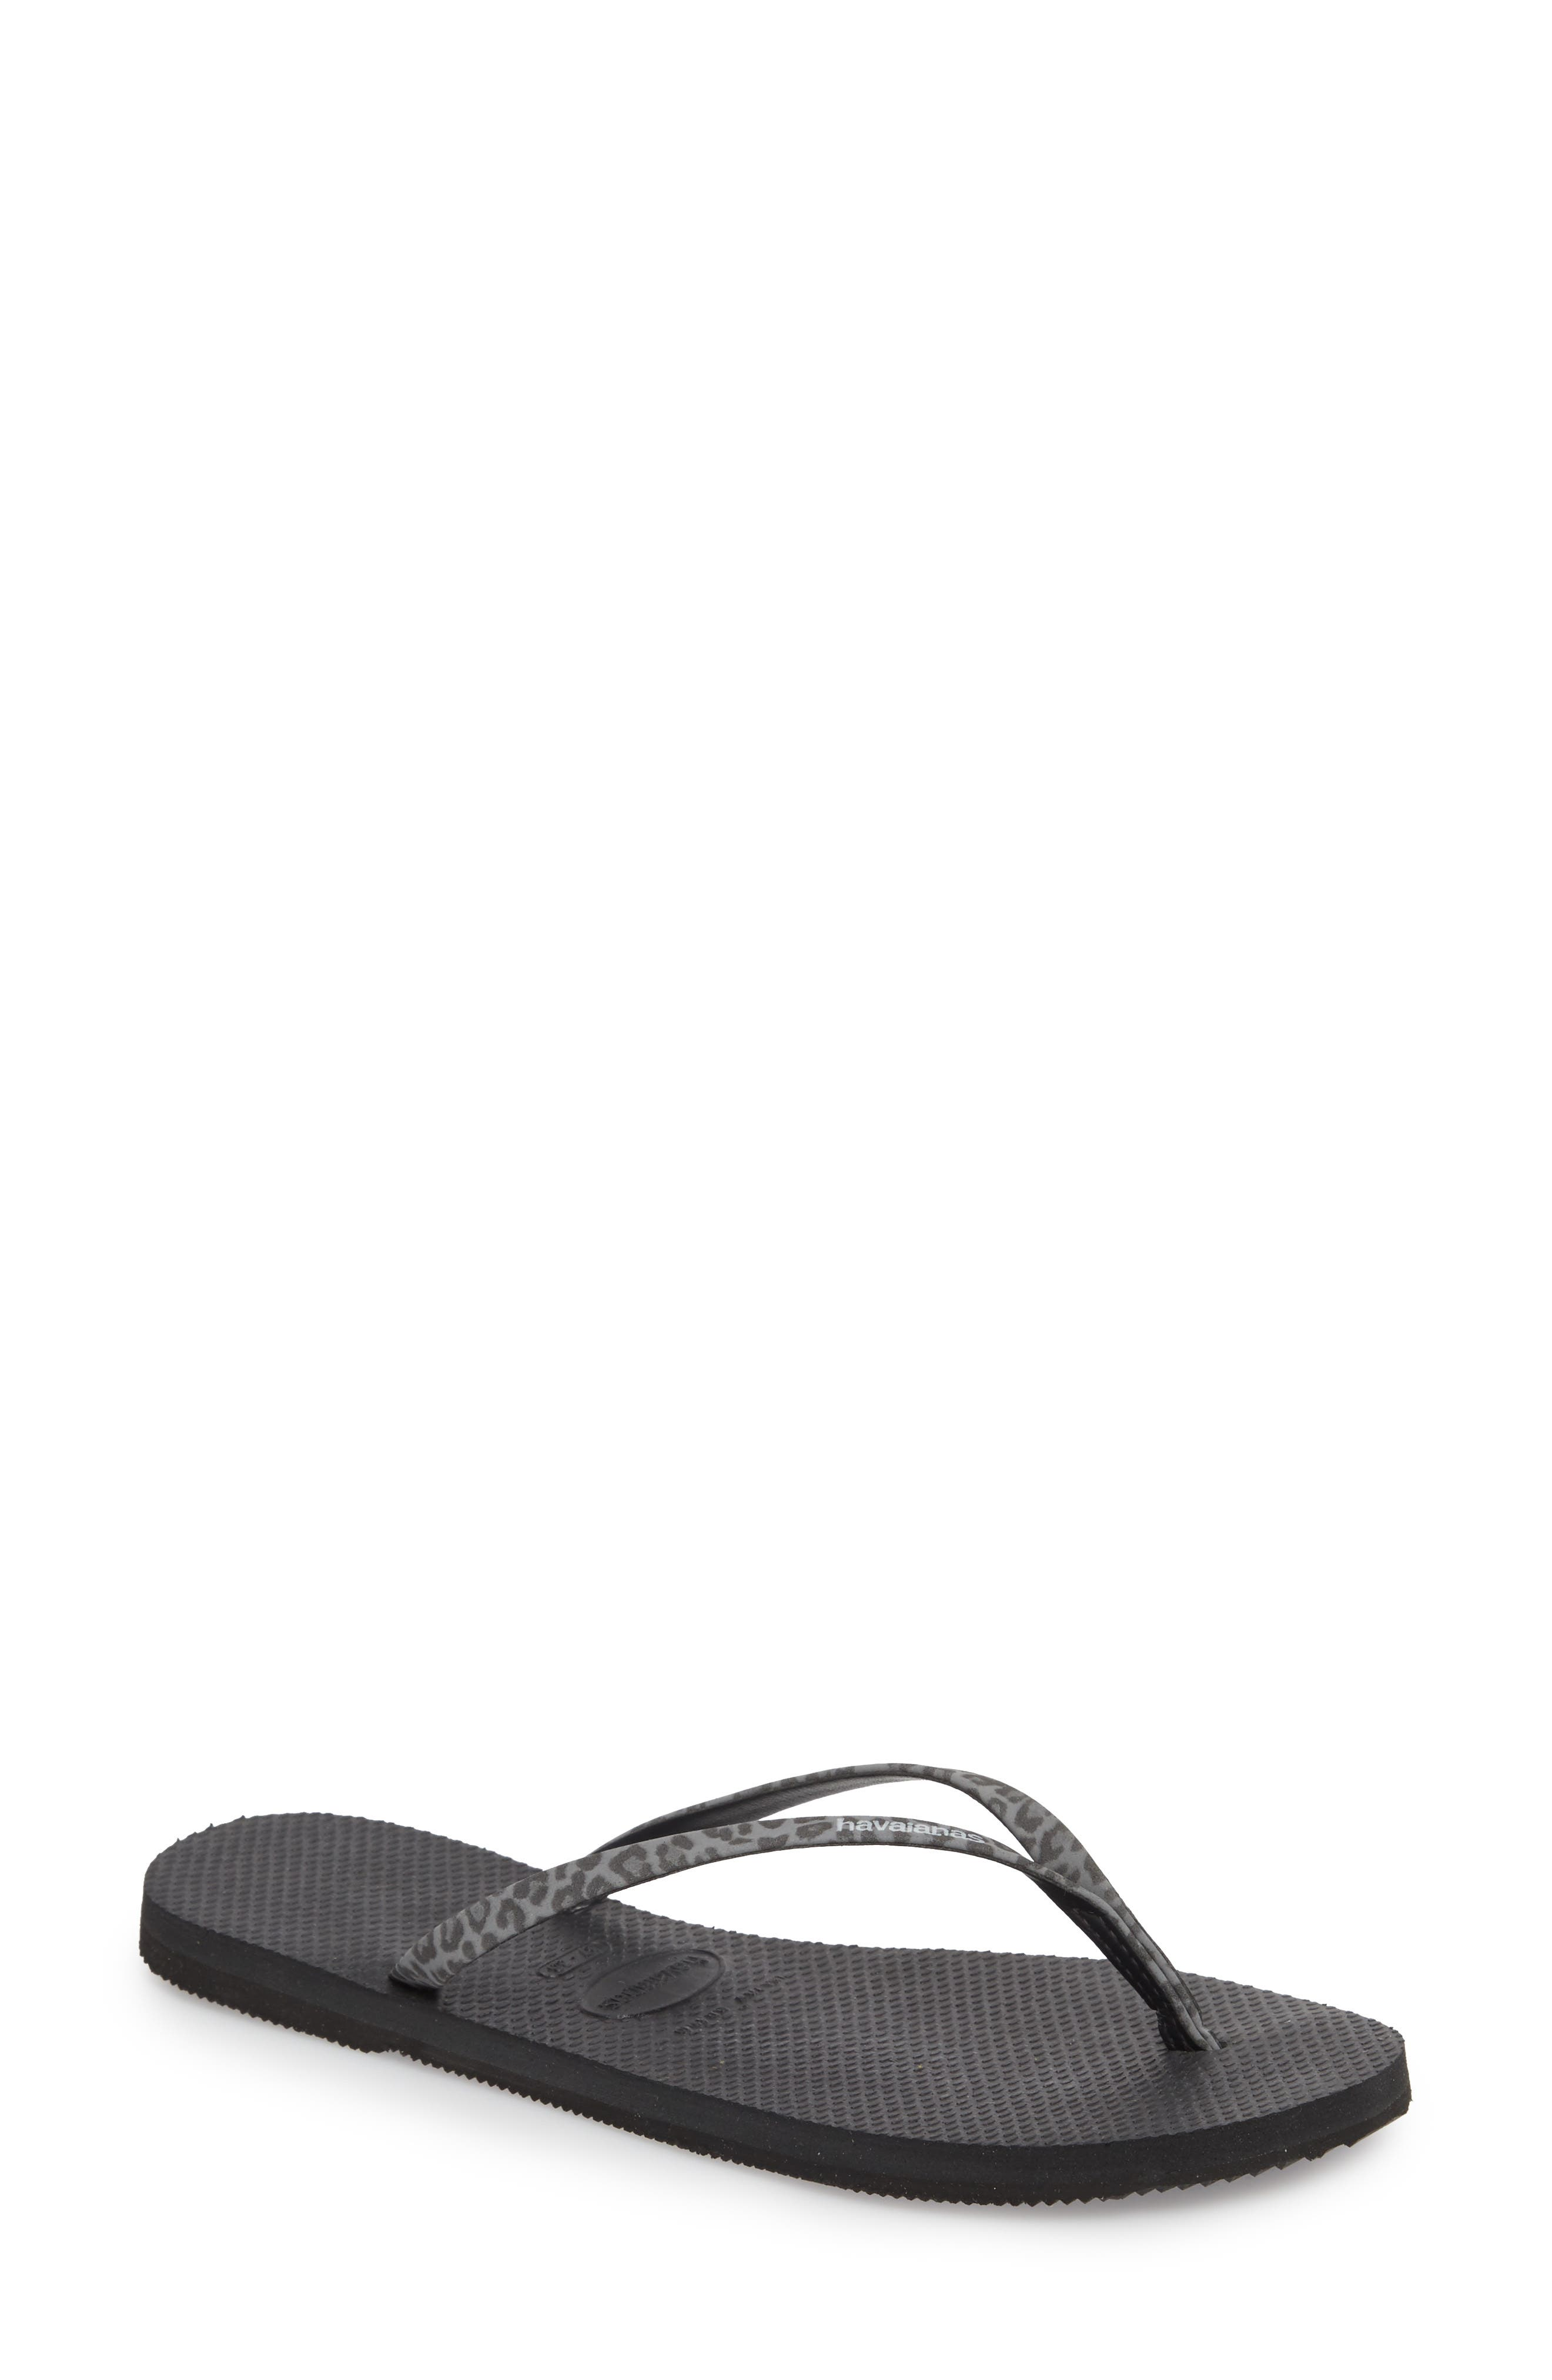 'You' Flip Flop,                         Main,                         color, ONYX